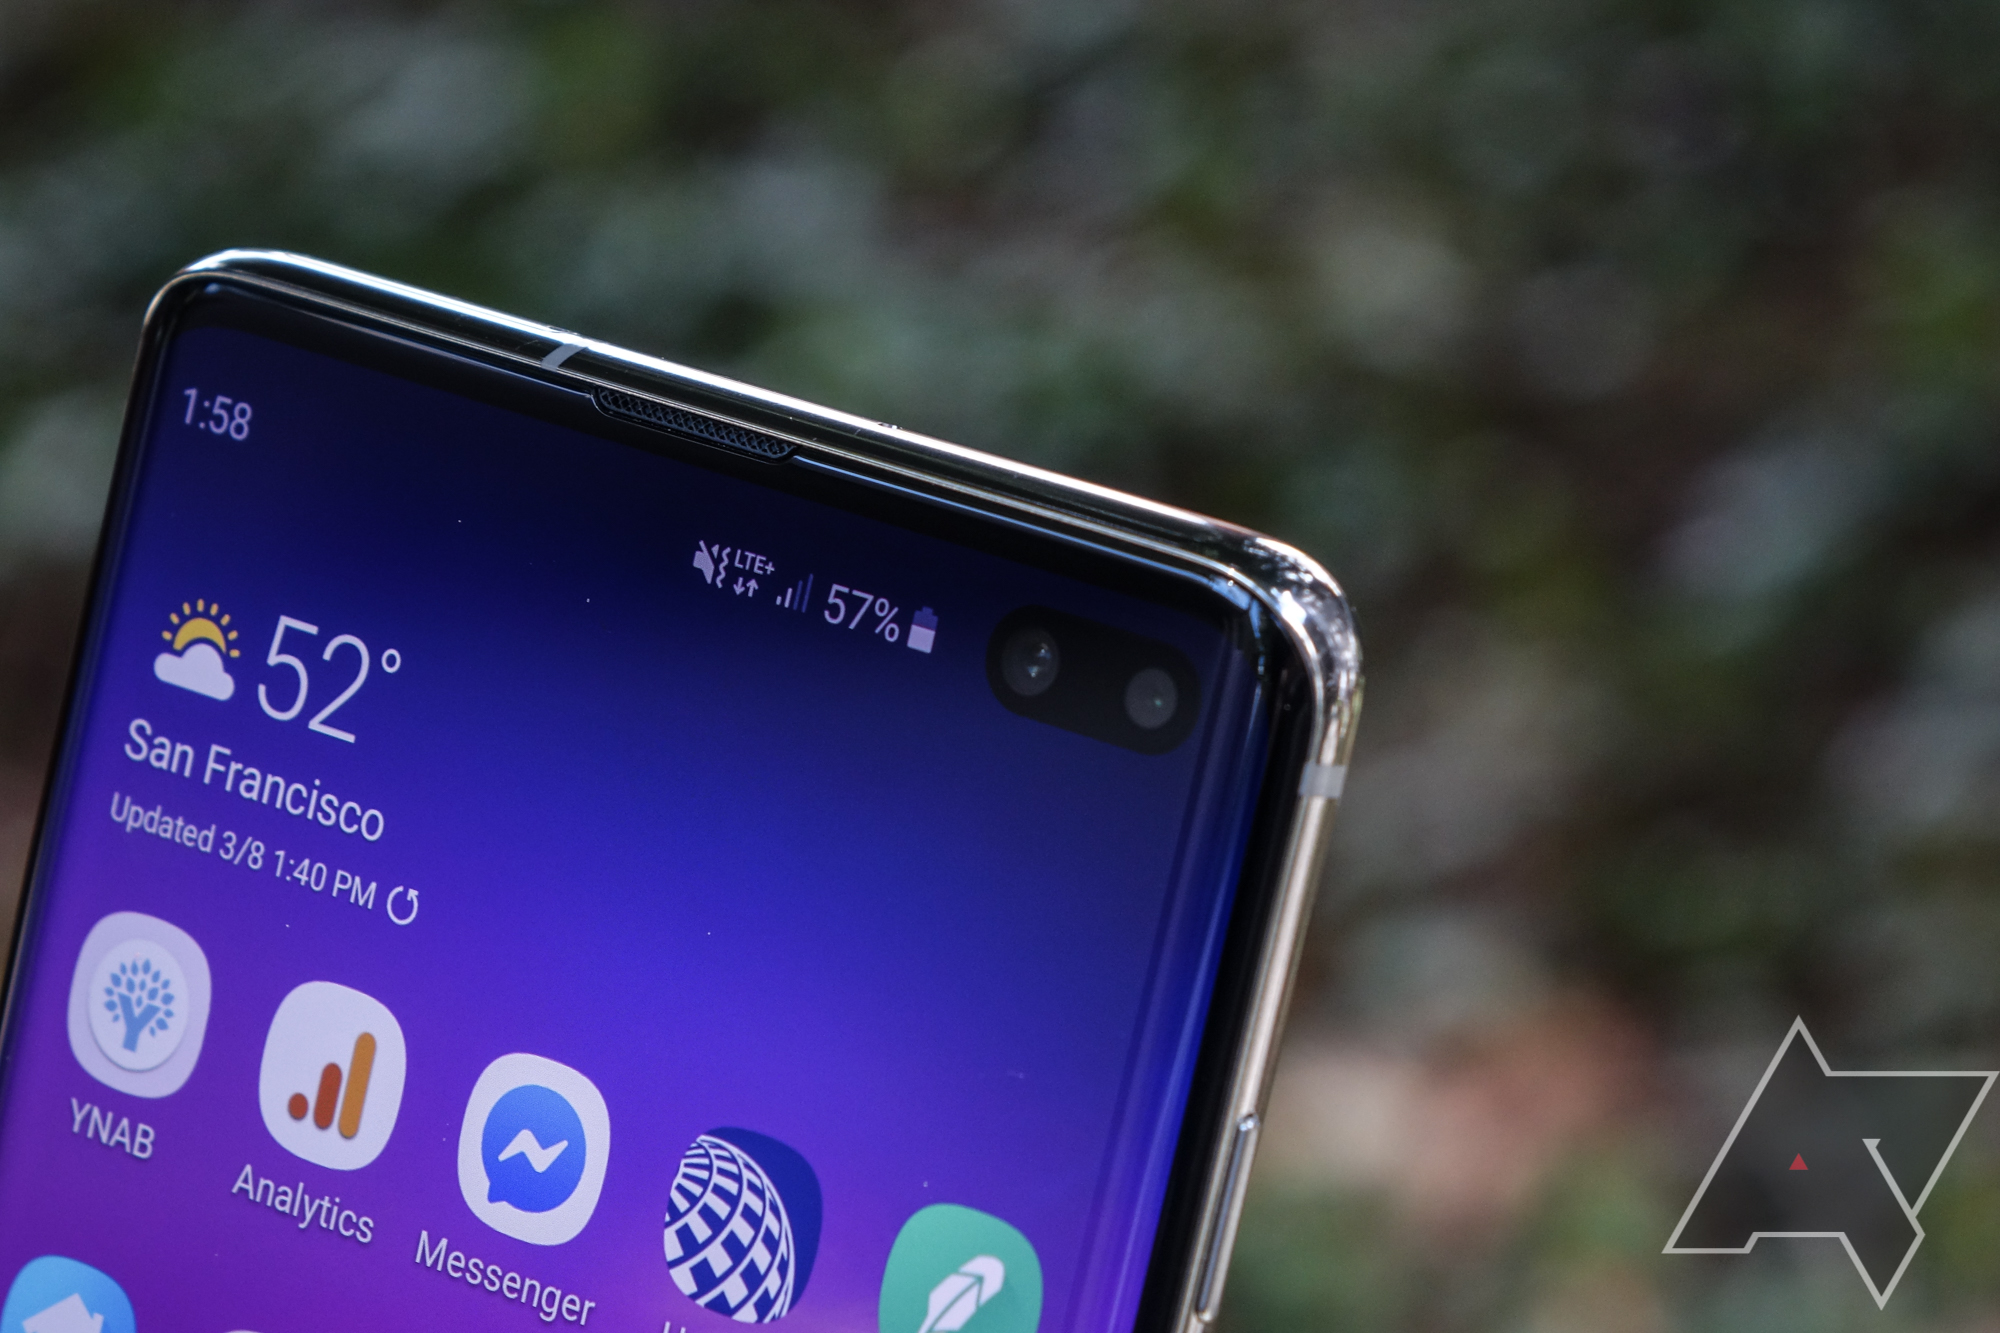 Android 11 makes 'waterfall' curved-edge screens less frustrating to use - Android Police